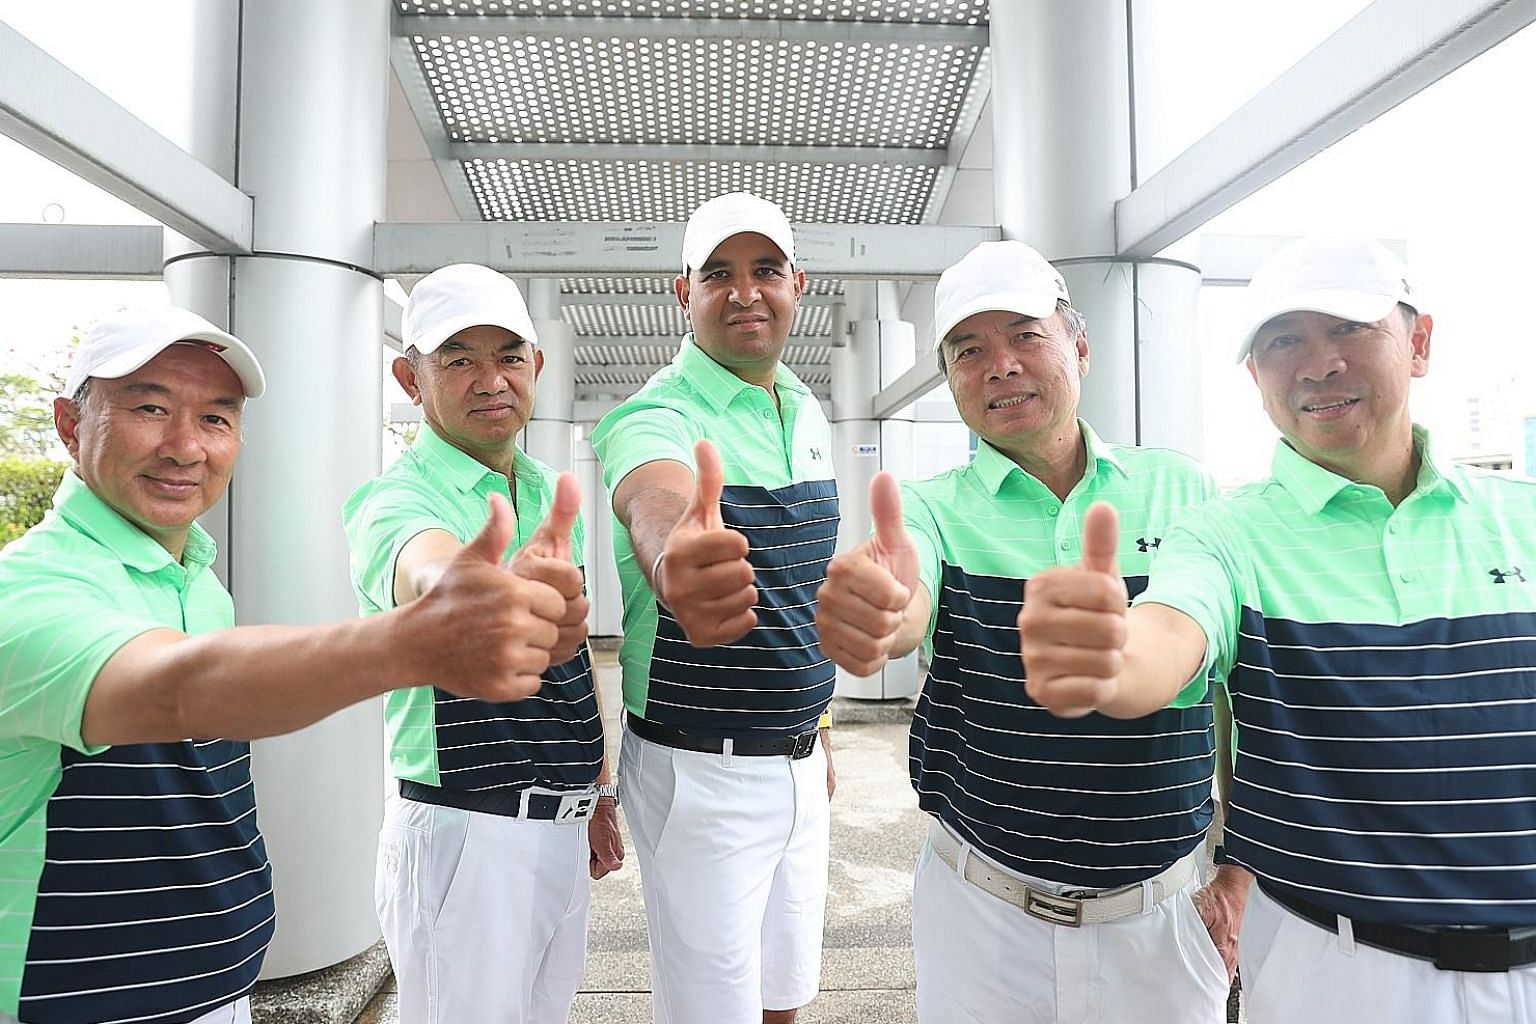 From left: Ricky Huang, Teo Hock Guan, Samir Bedi, Patrick Low and Ong Siew Yong will be representing Singapore in the World Amateur Golfers Championship World Finals across the Causeway this week.